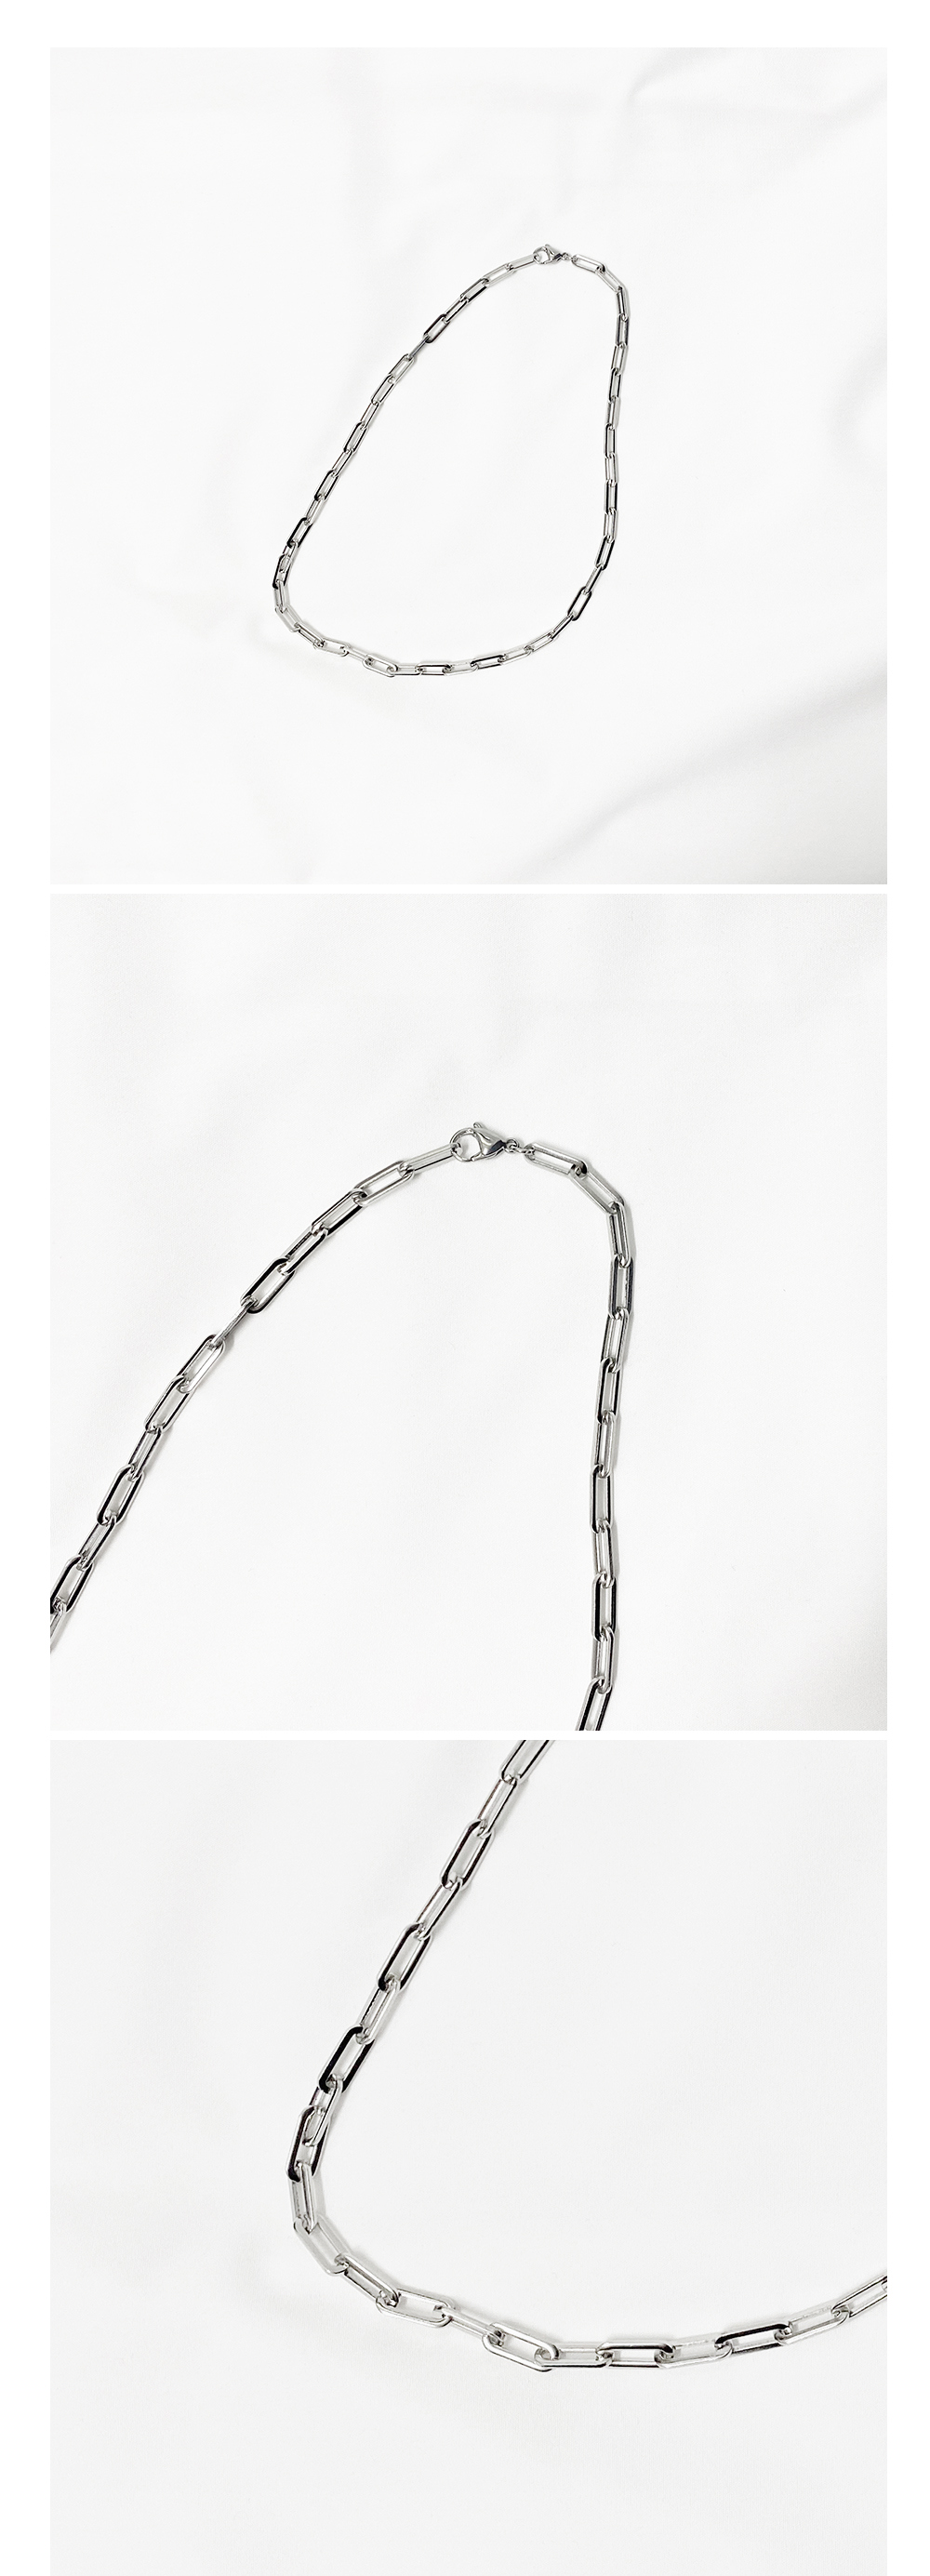 Built-in chain necklace